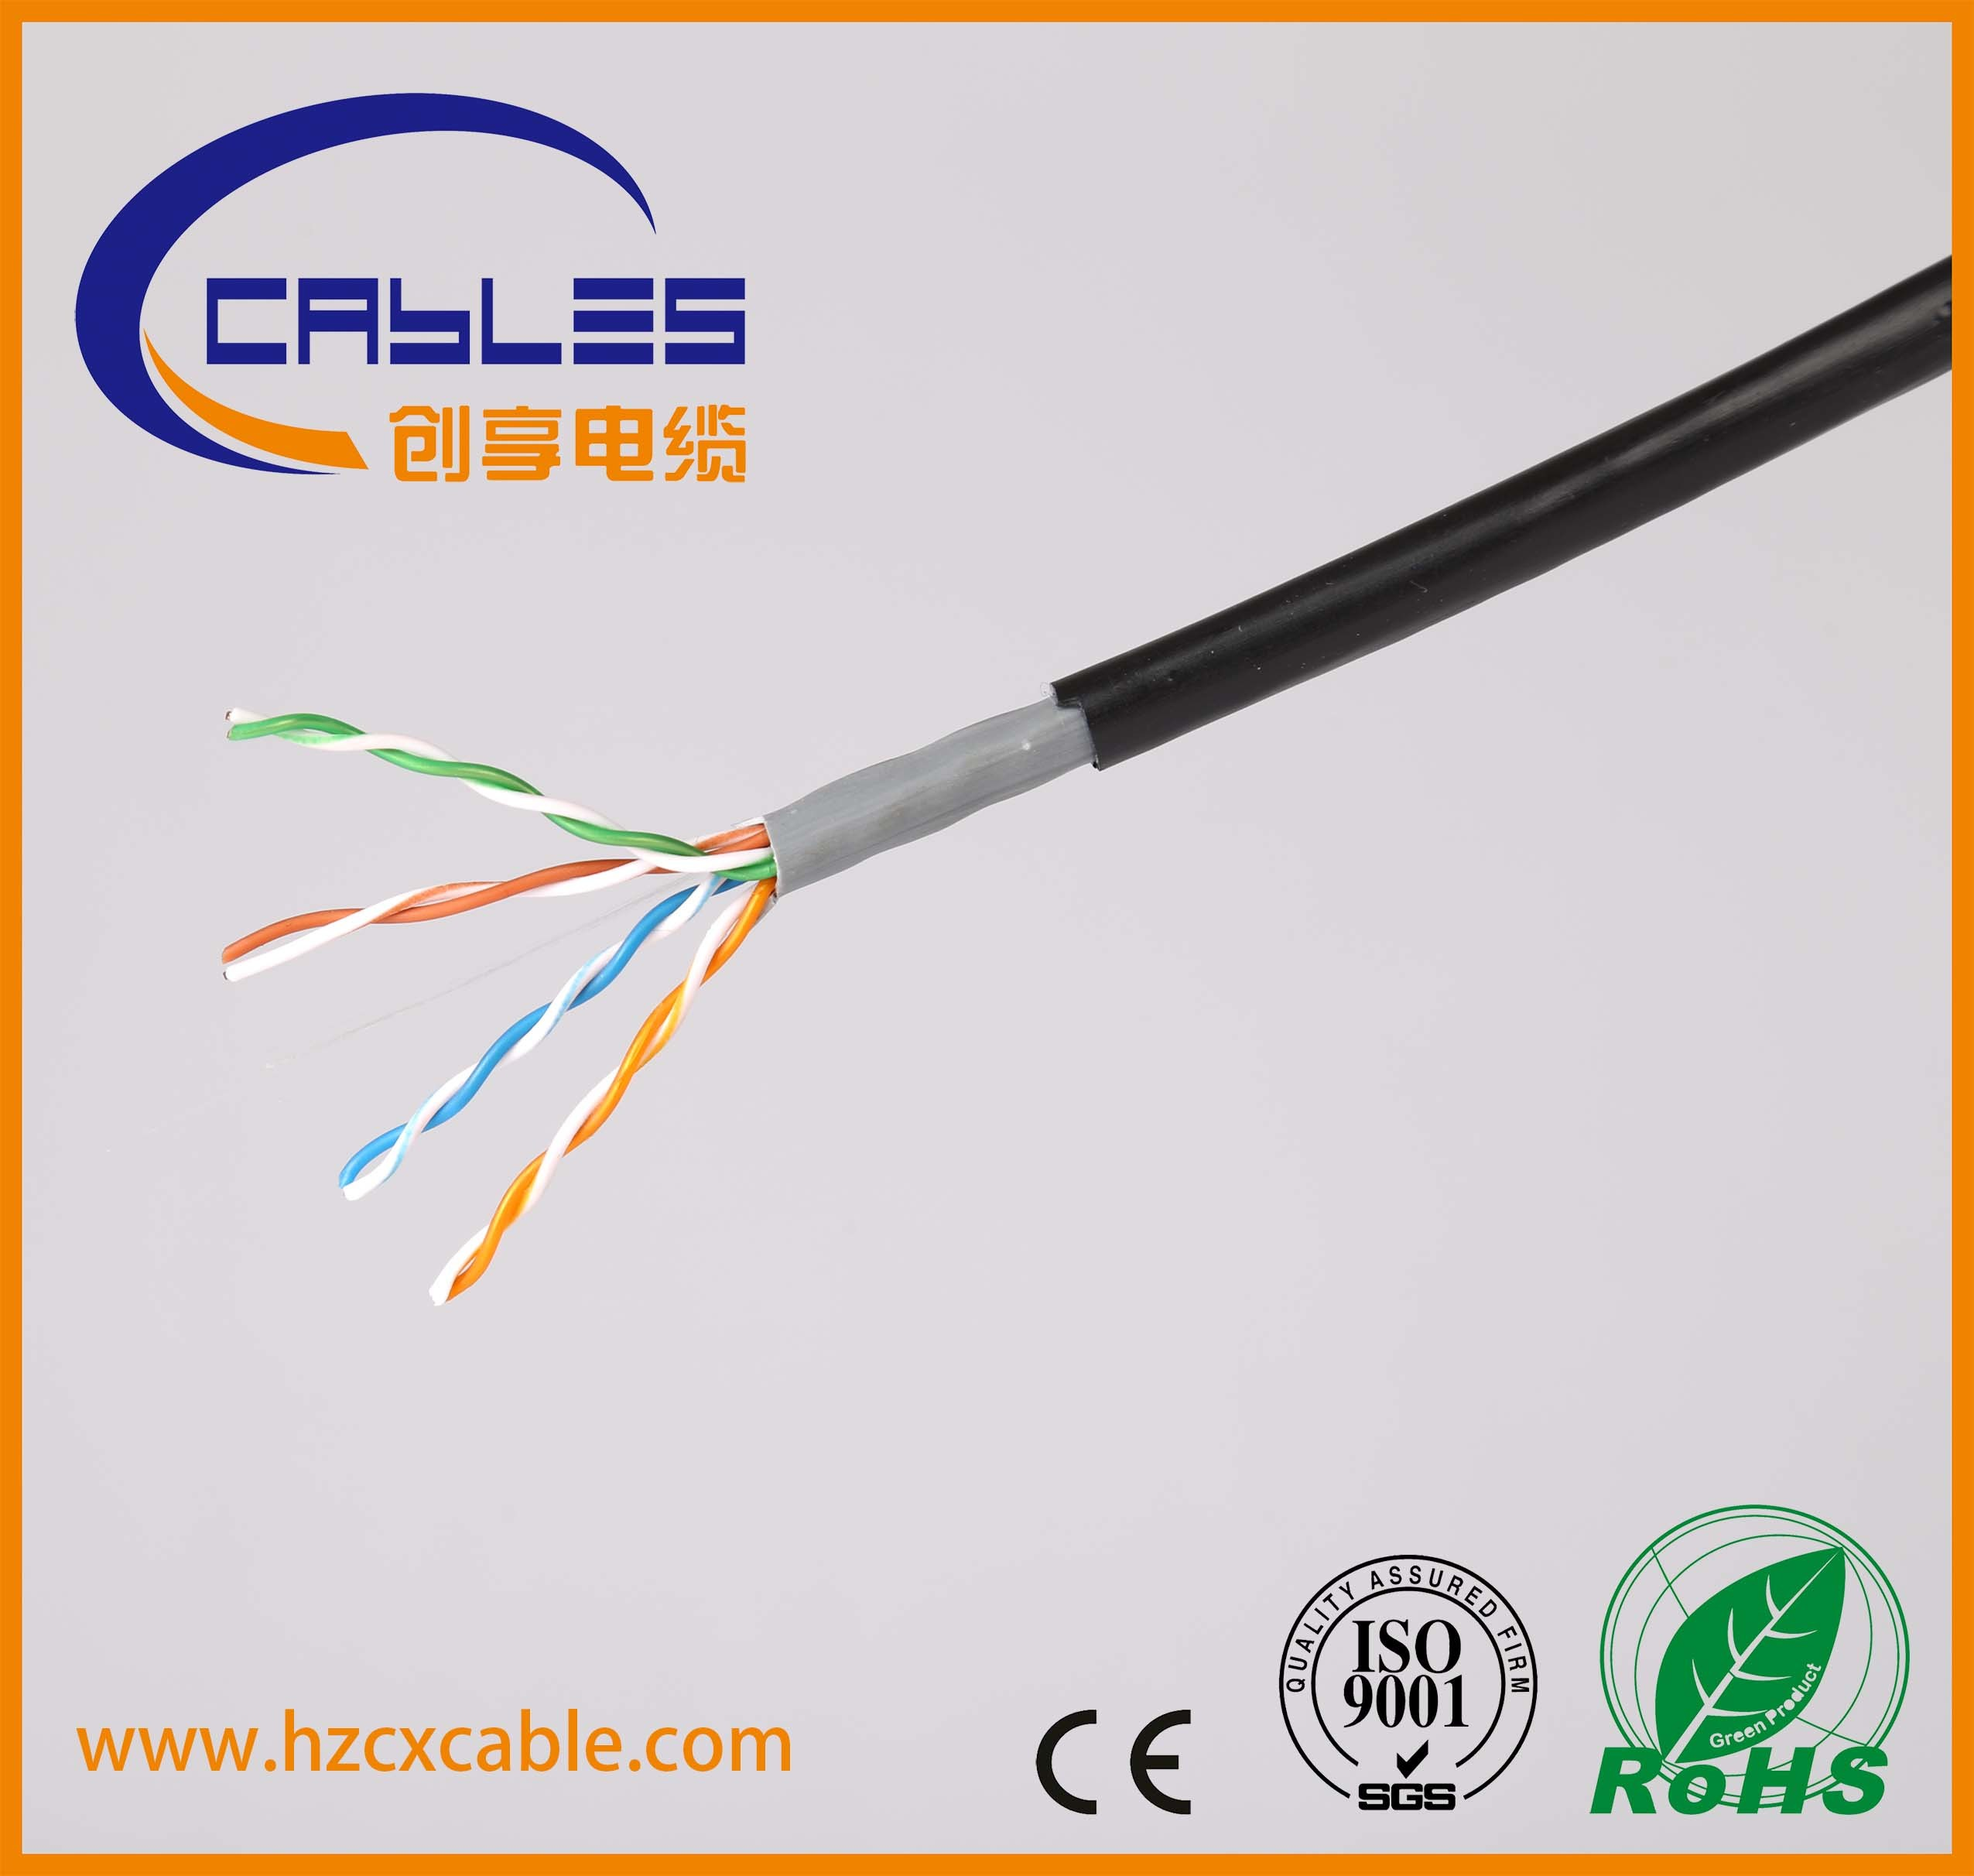 Network Cable/LAN Cable Outdoor UTP Cat5e Cable